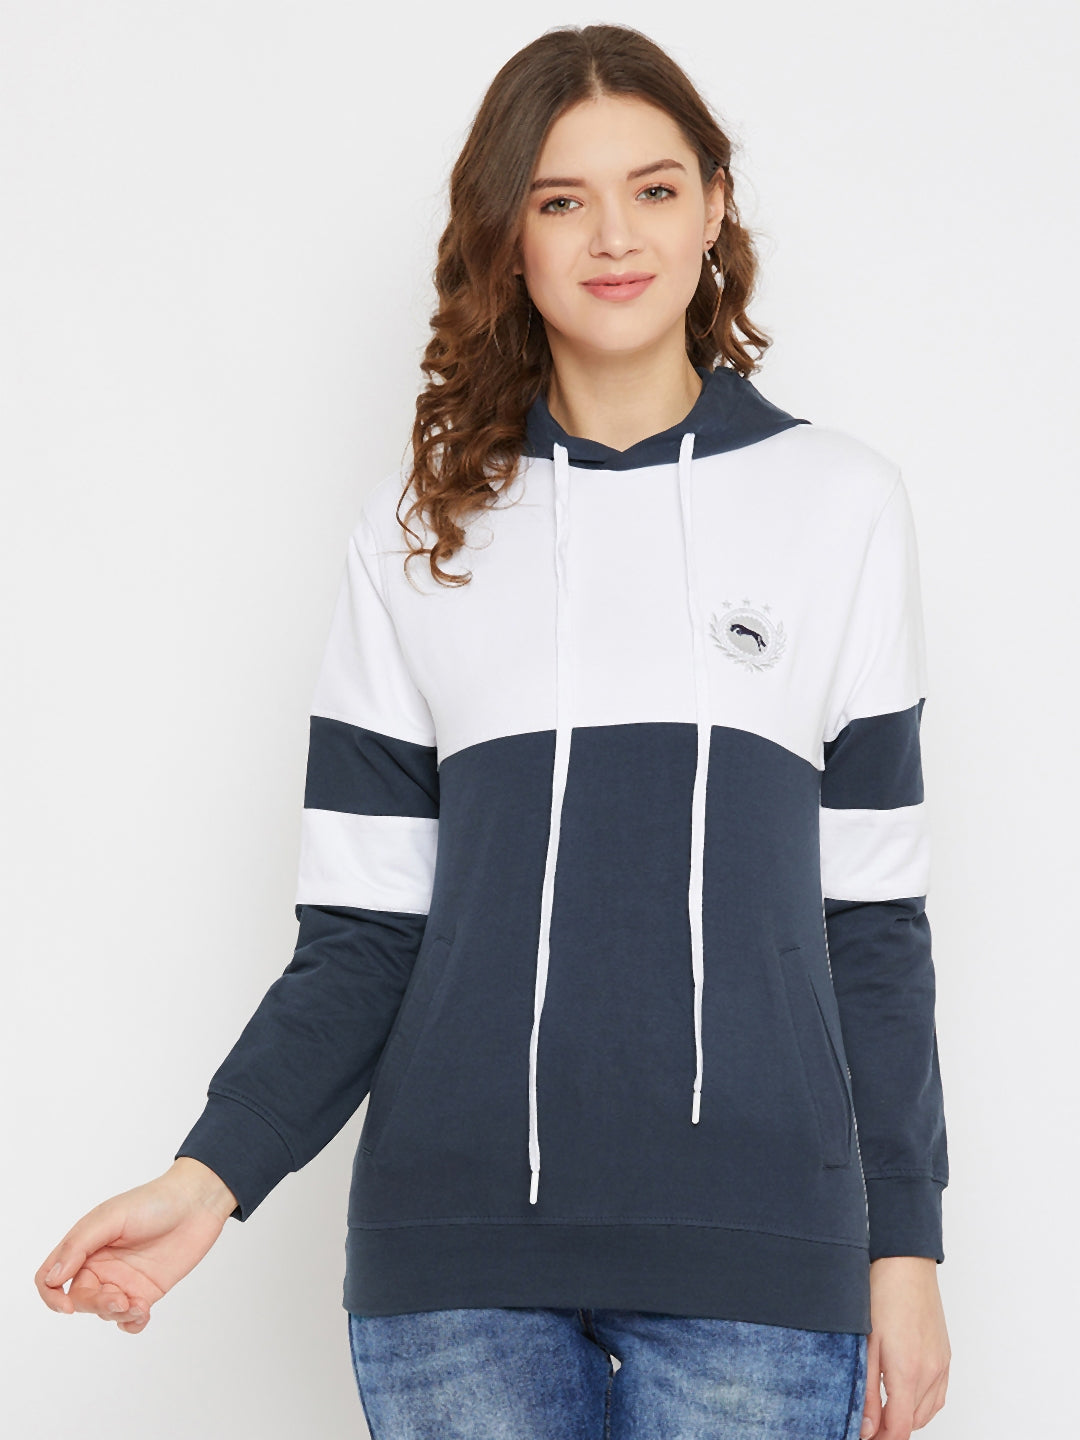 JUMP USA Women Navy Blue Cotton Hooded Sweatshirt